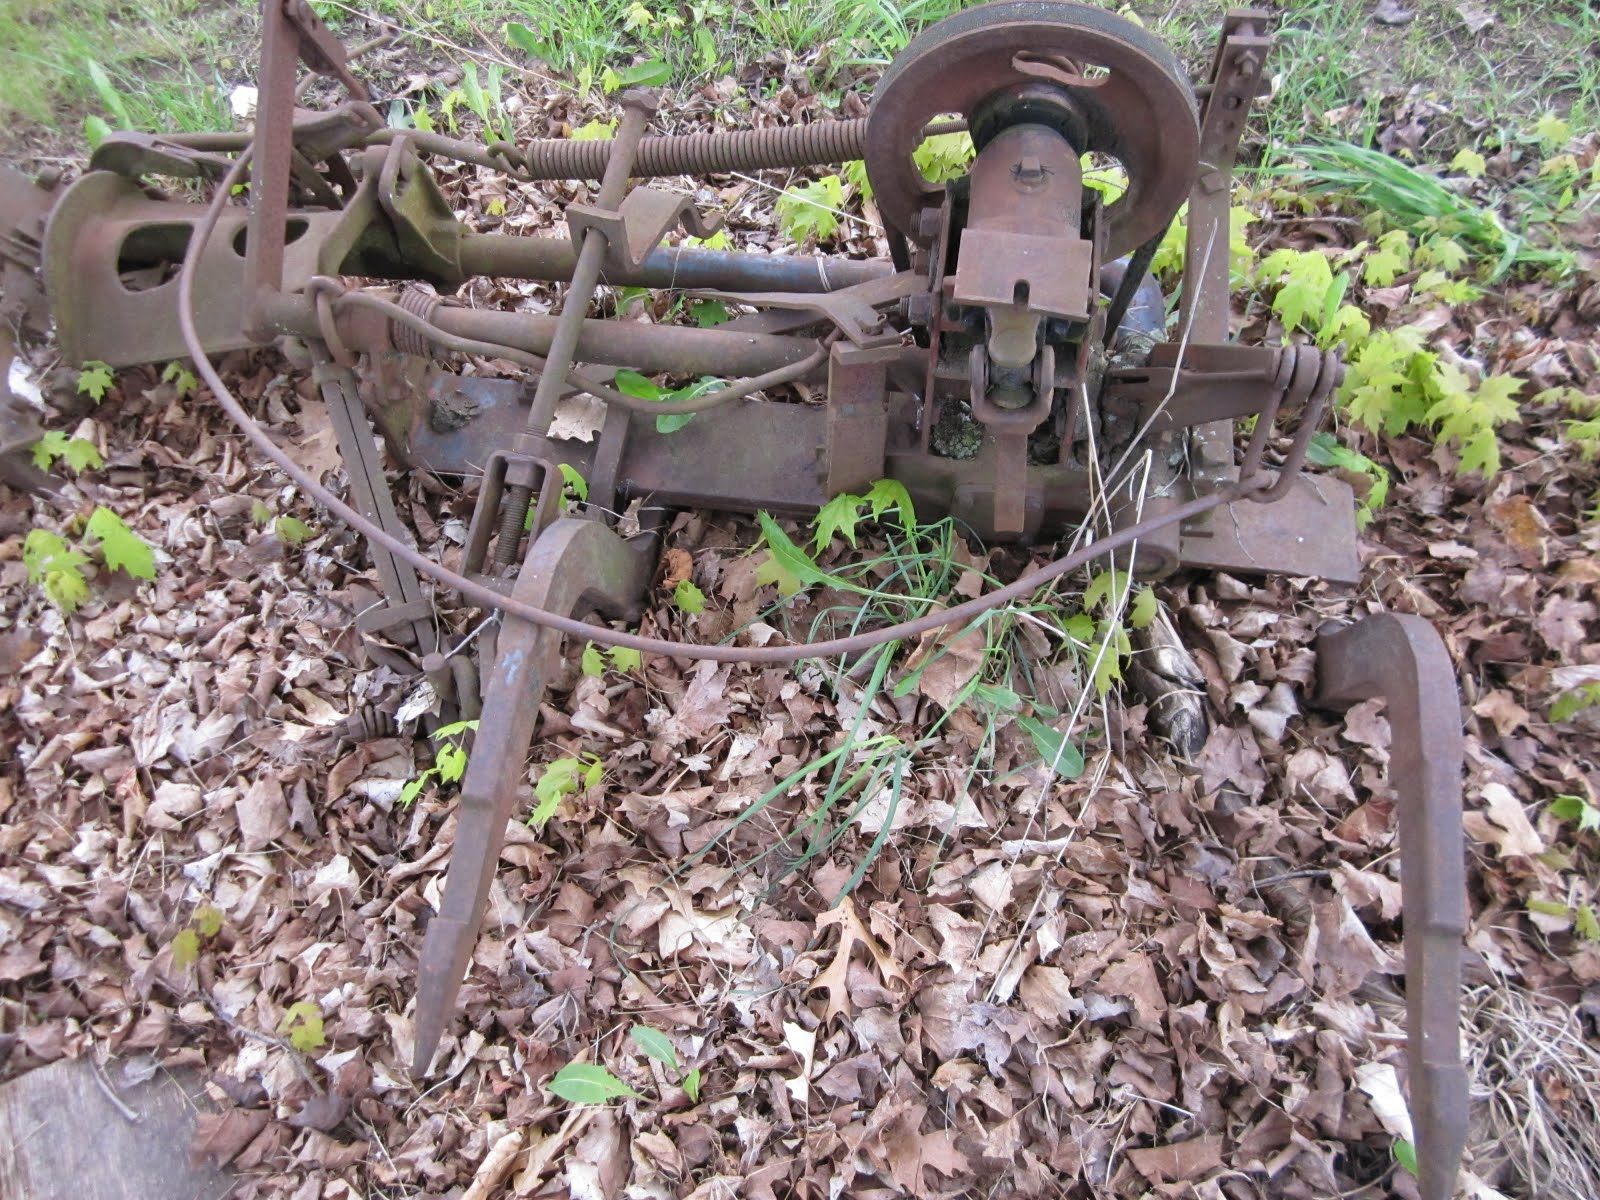 C-21-P Mower | Farmall Super C and Fast Hitch Implements